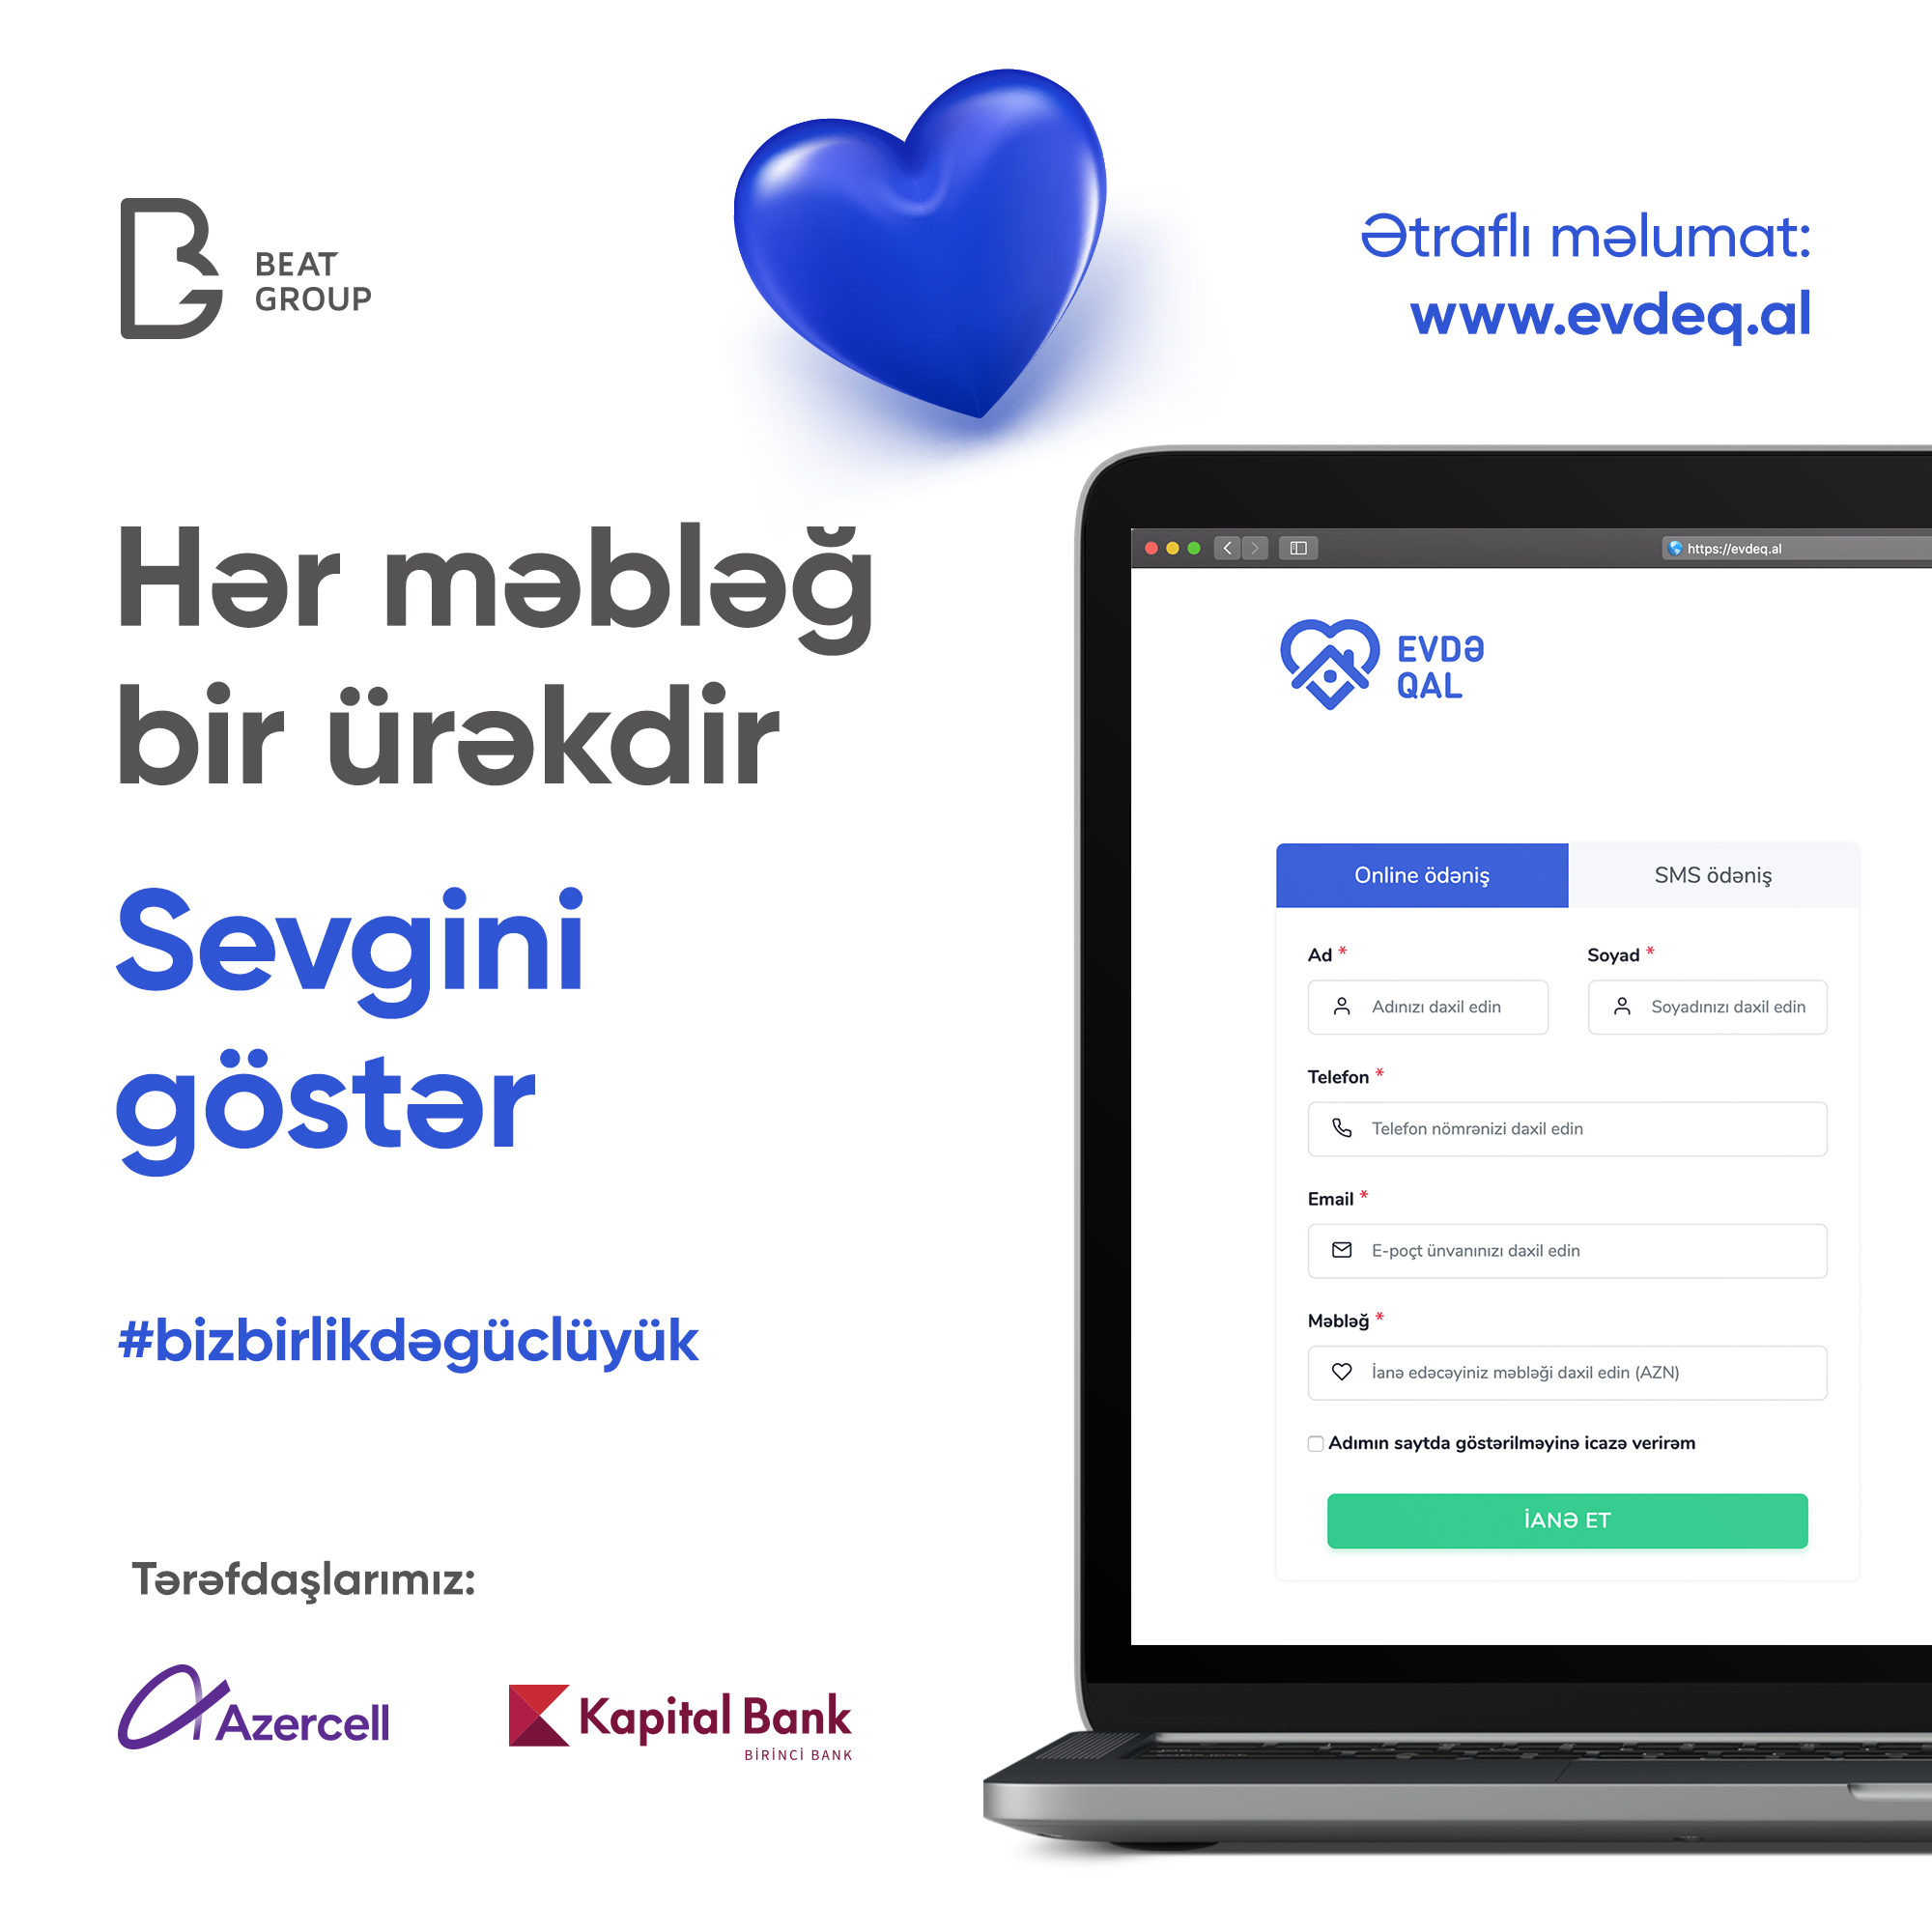 evdeqal_launch